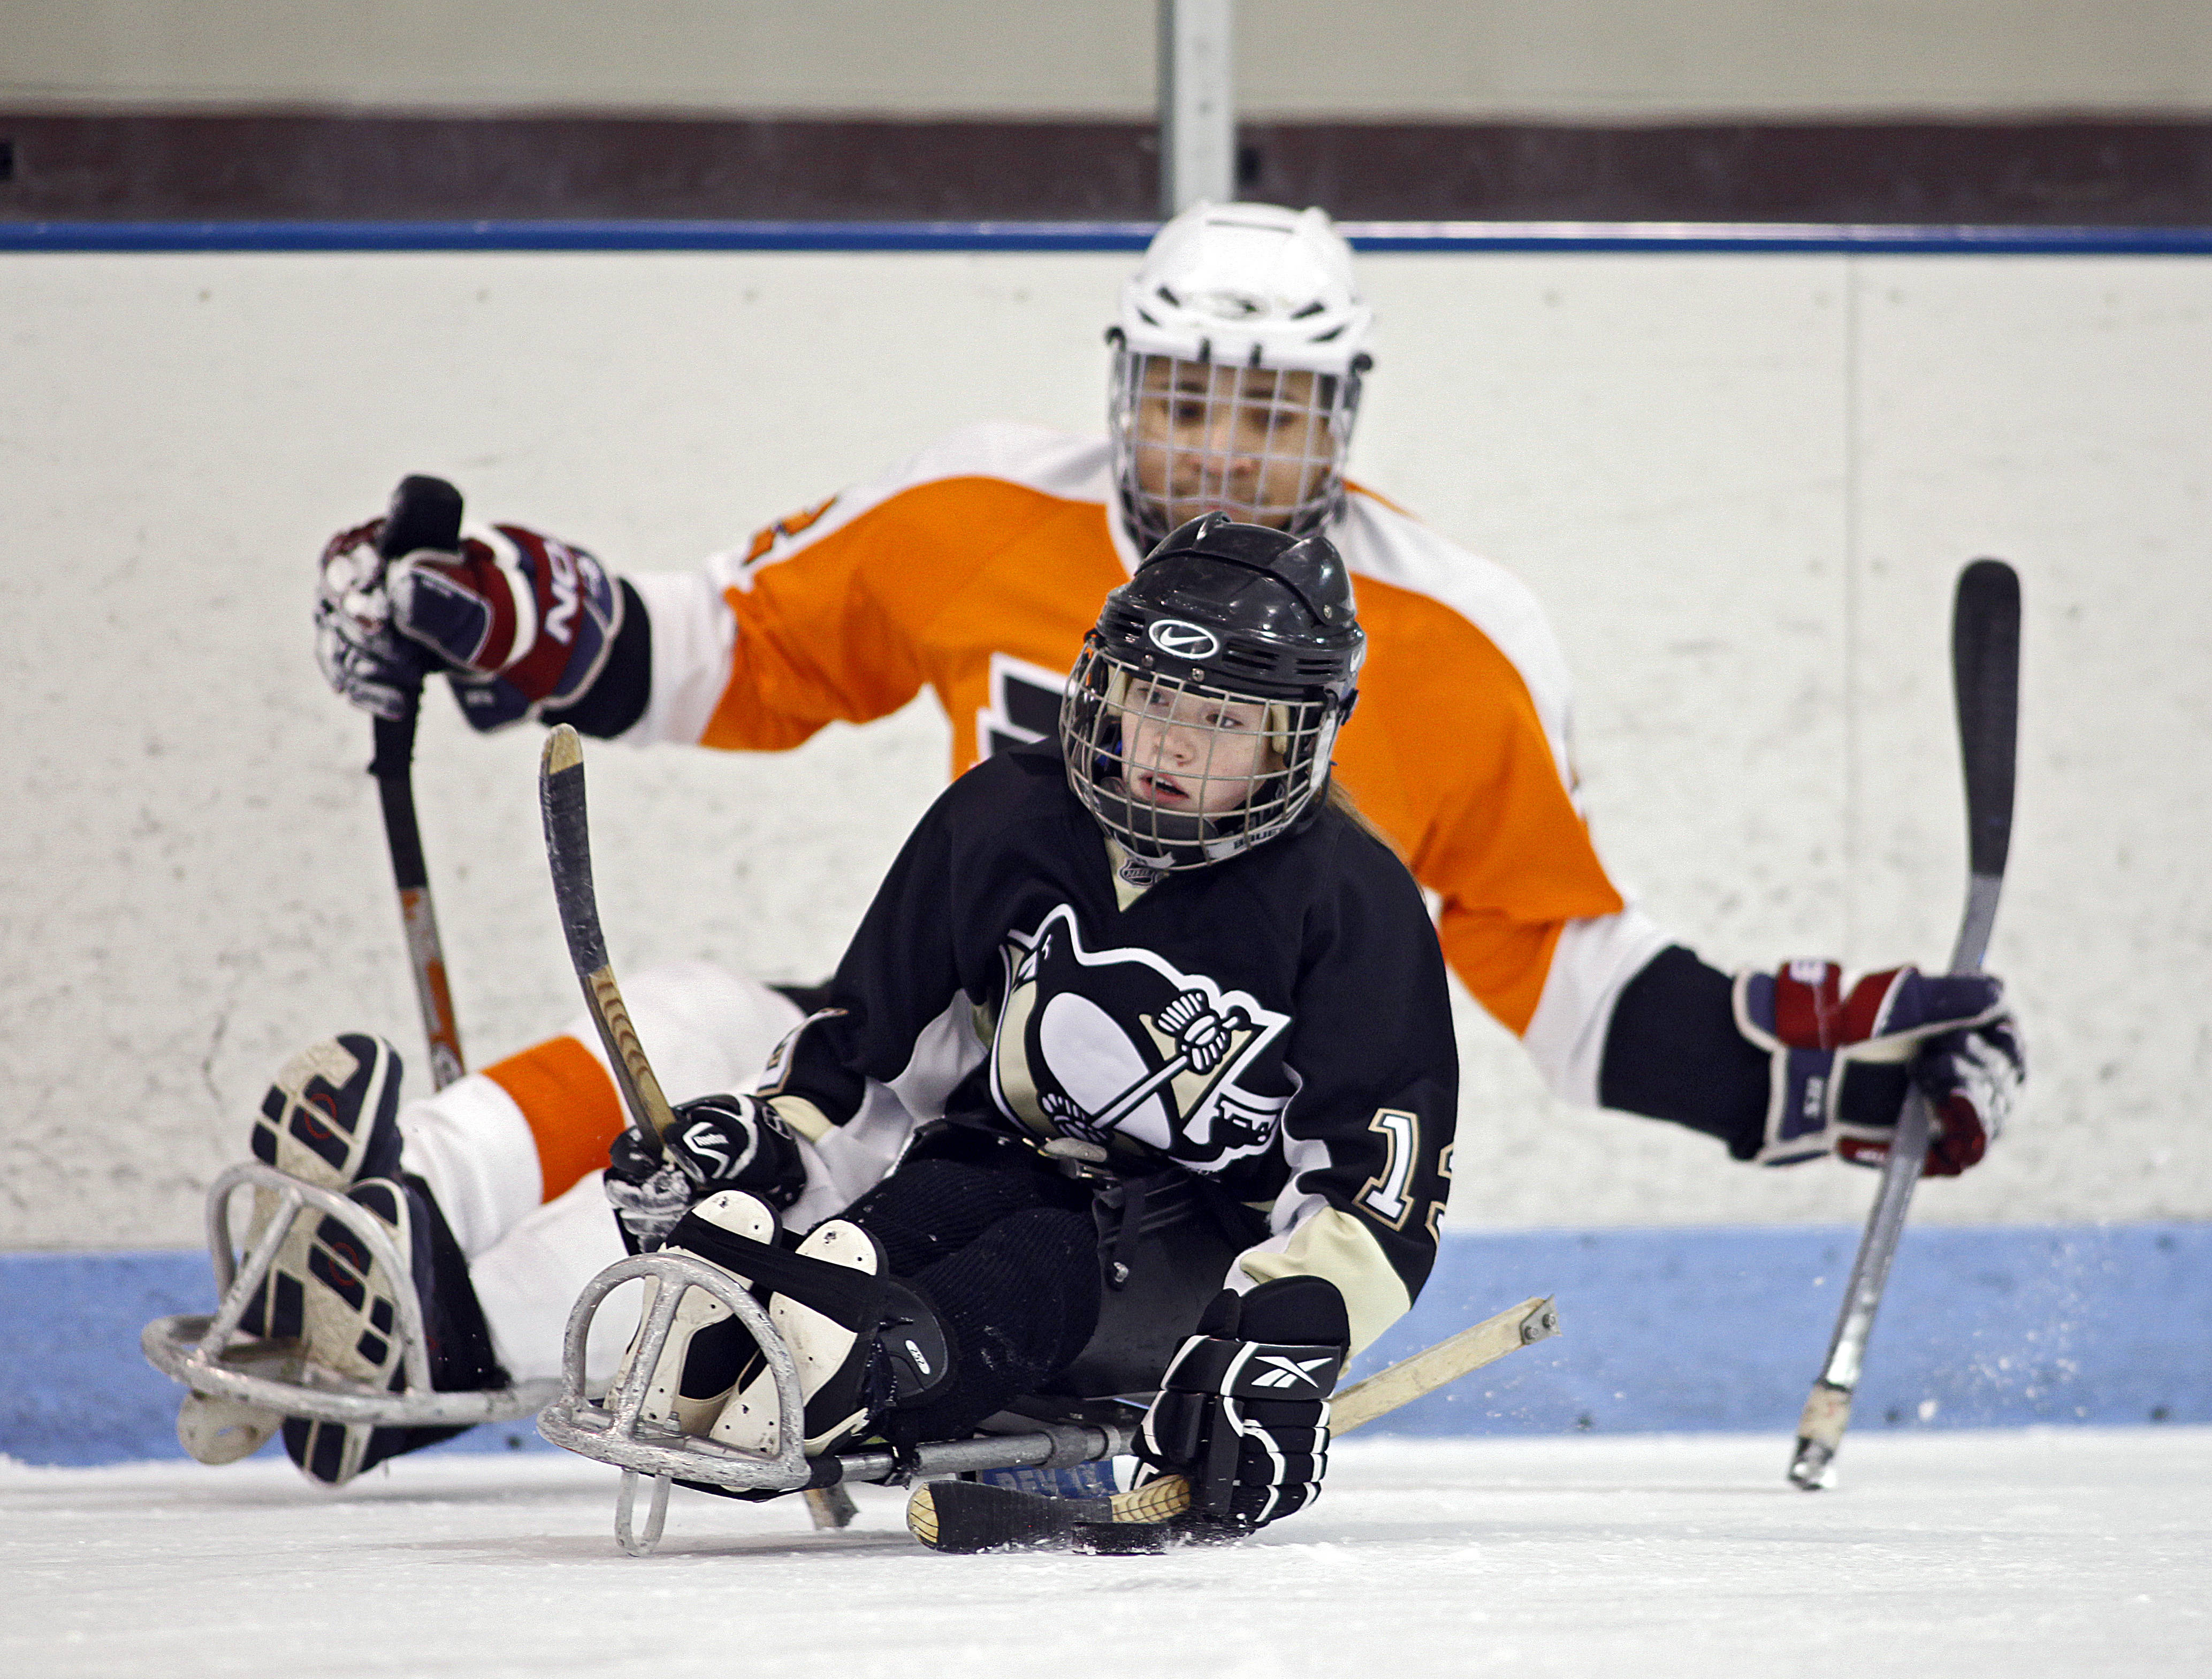 Sledge Hockey - Children learning the game at practice ...